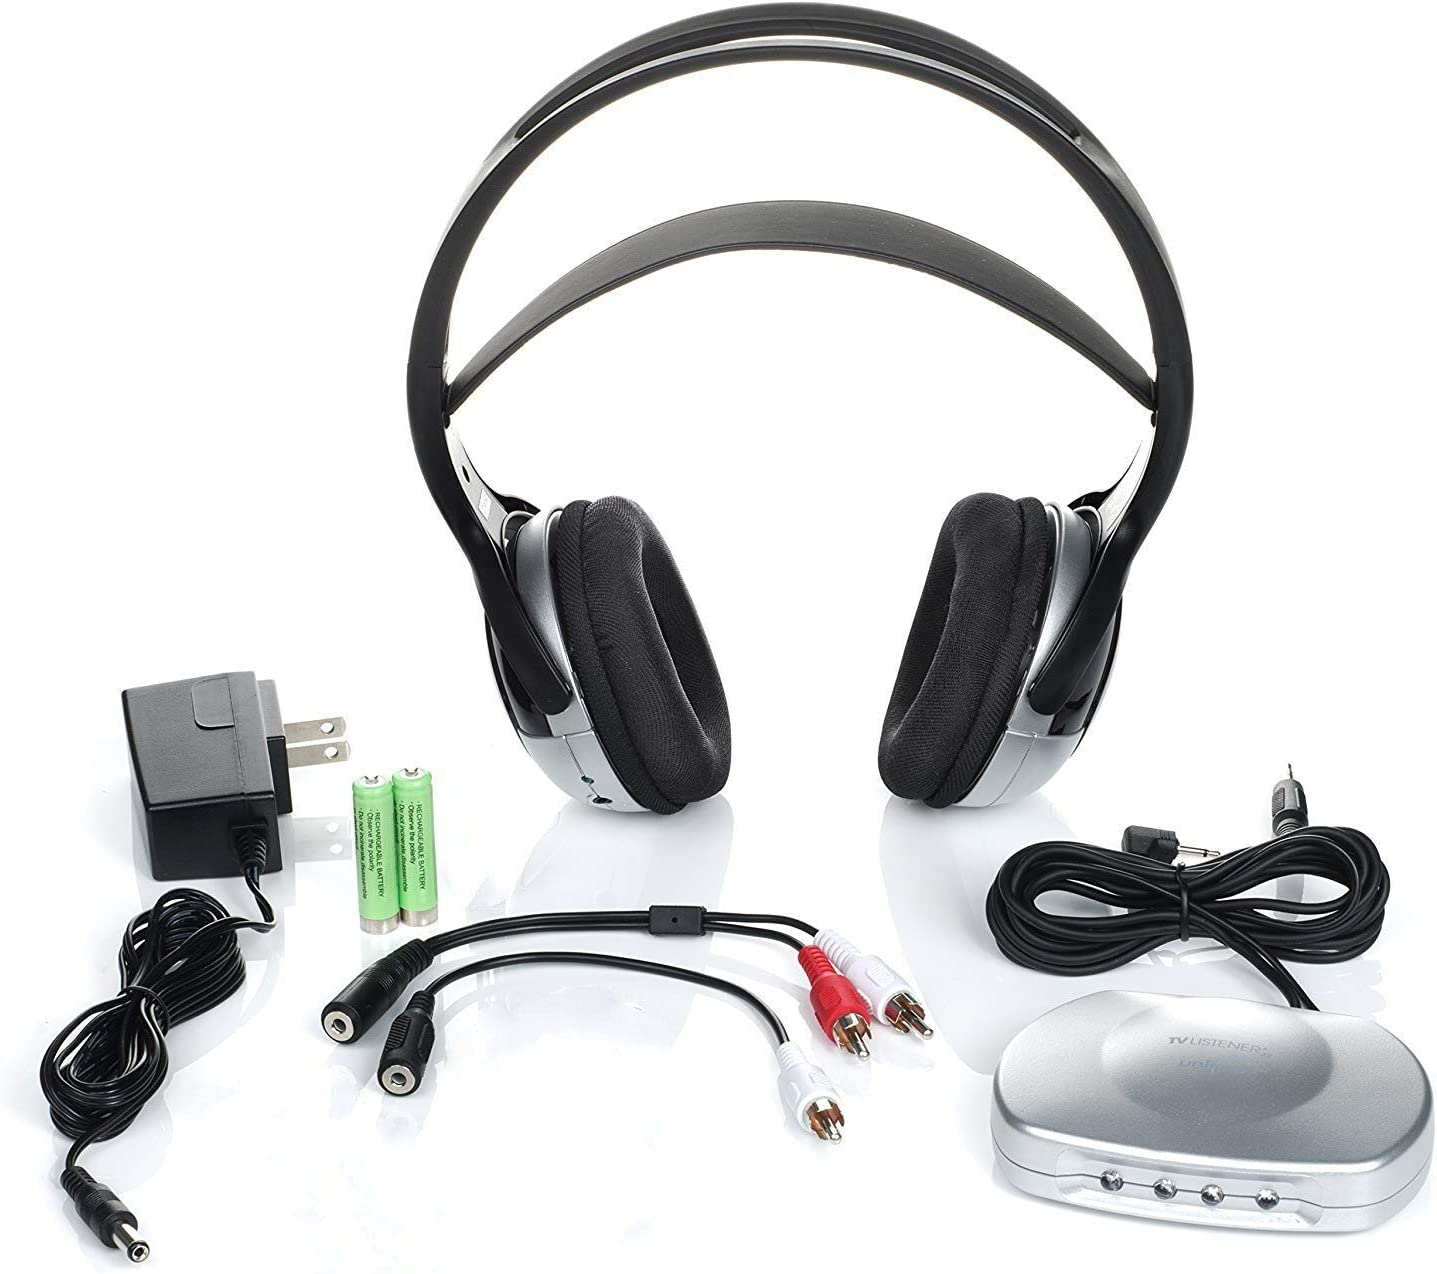 J3 TV920 Listener Rechargeable Wired Infrared Headphone For TV